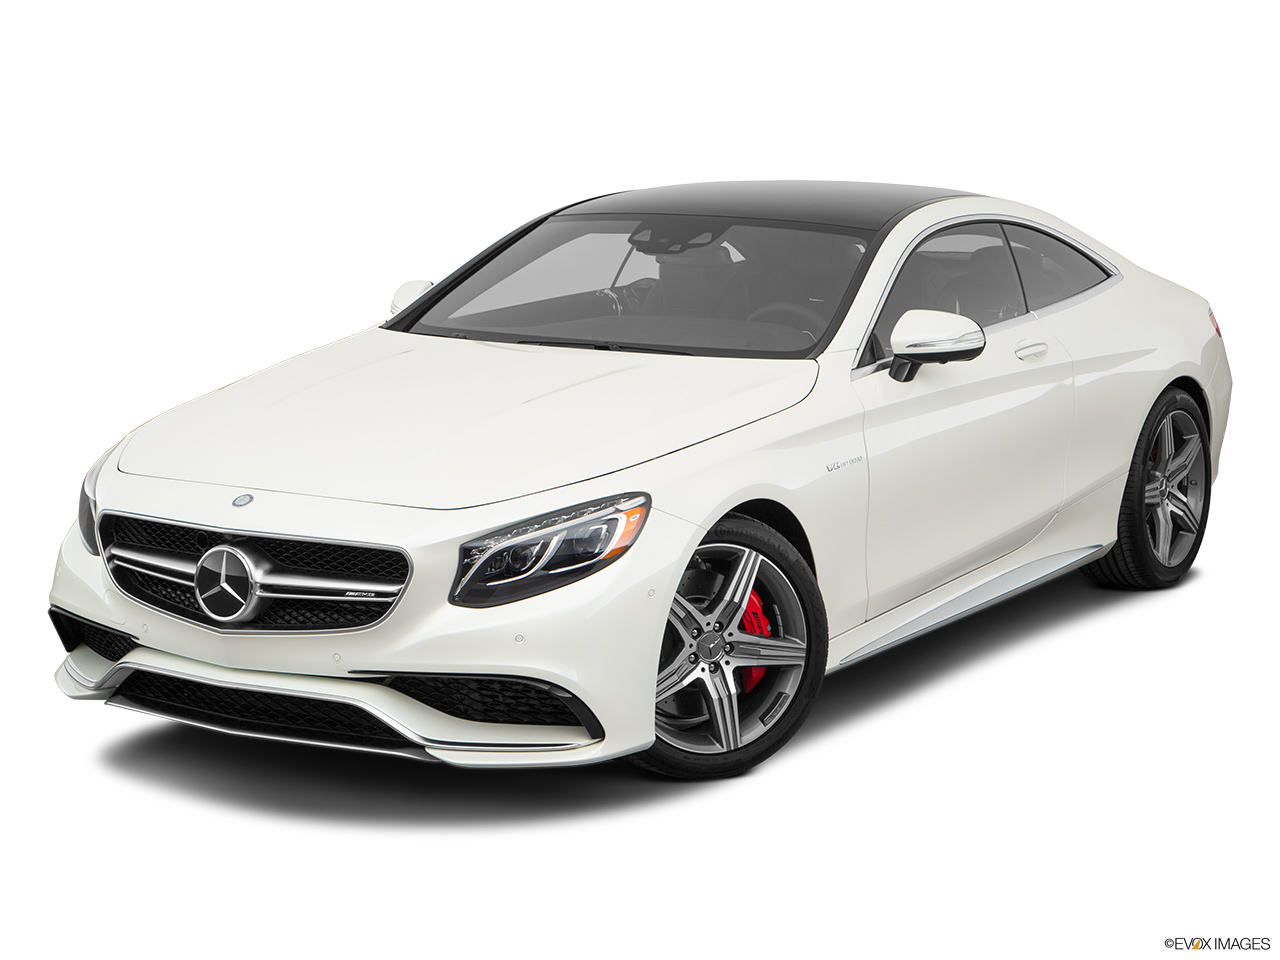 Mercedes benz s 63 amg coupe price in uae new mercedes for Mercedes benz tune up cost